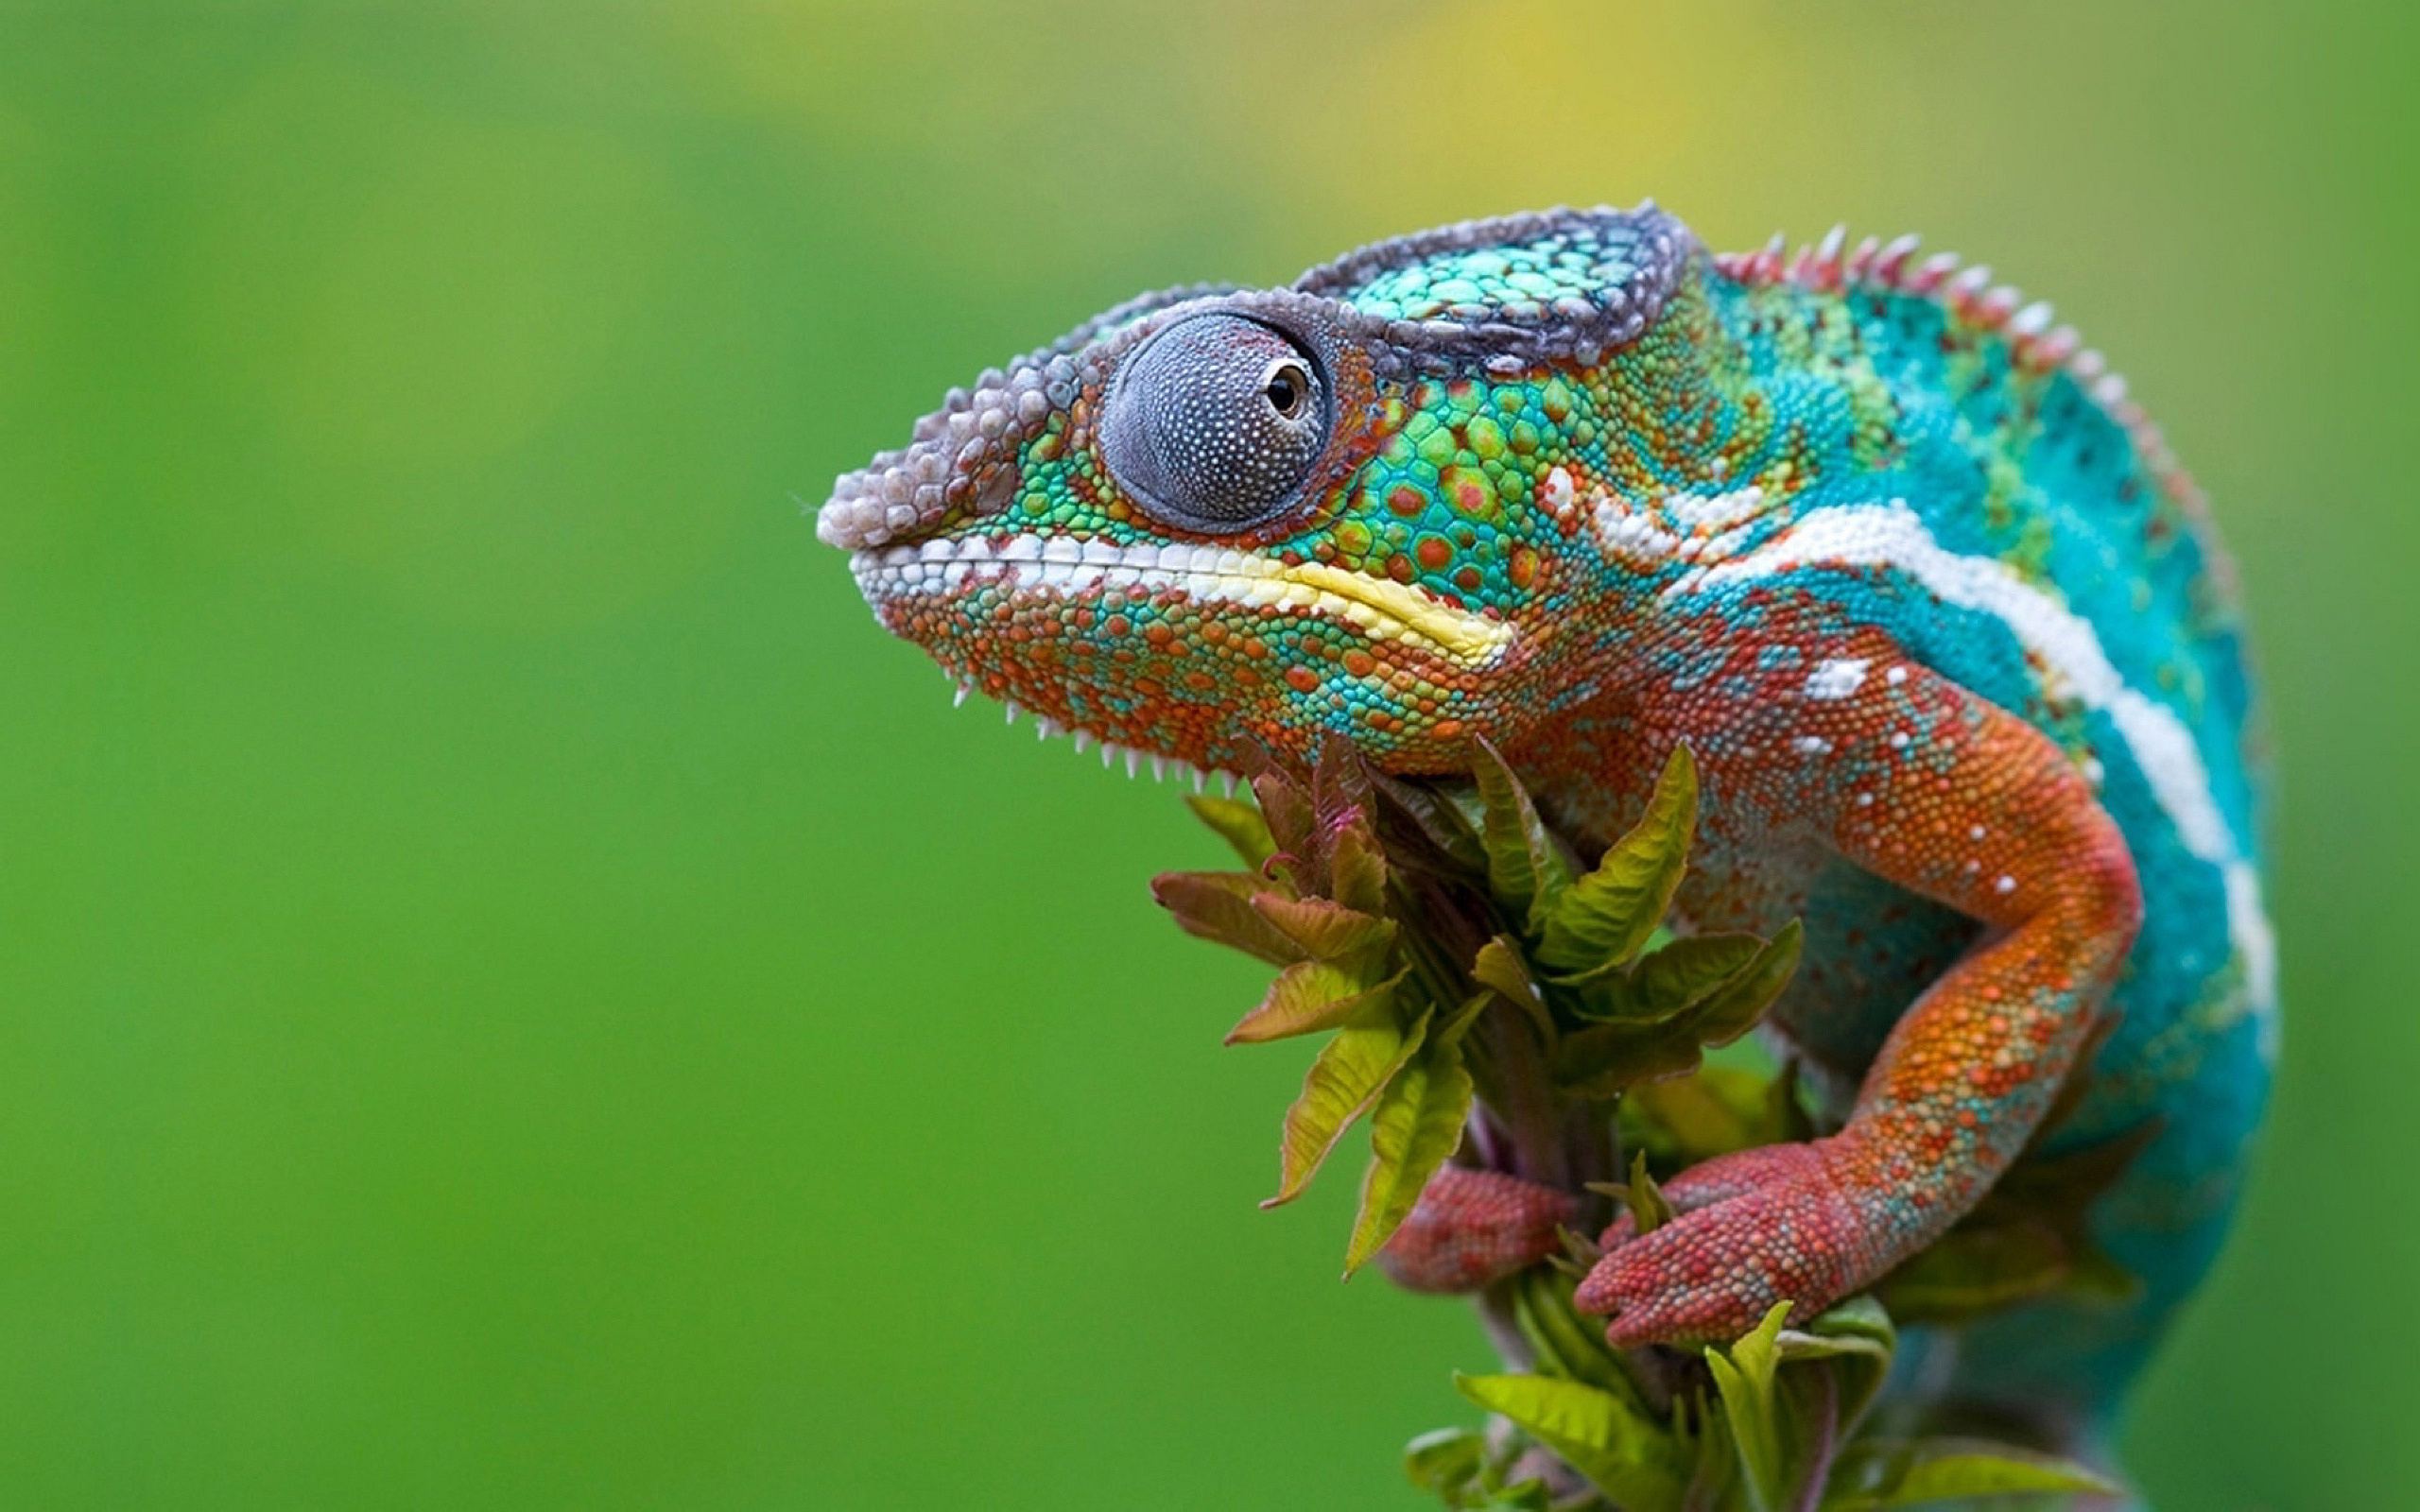 Chameleon Sitting Quiet 159.42 Kb